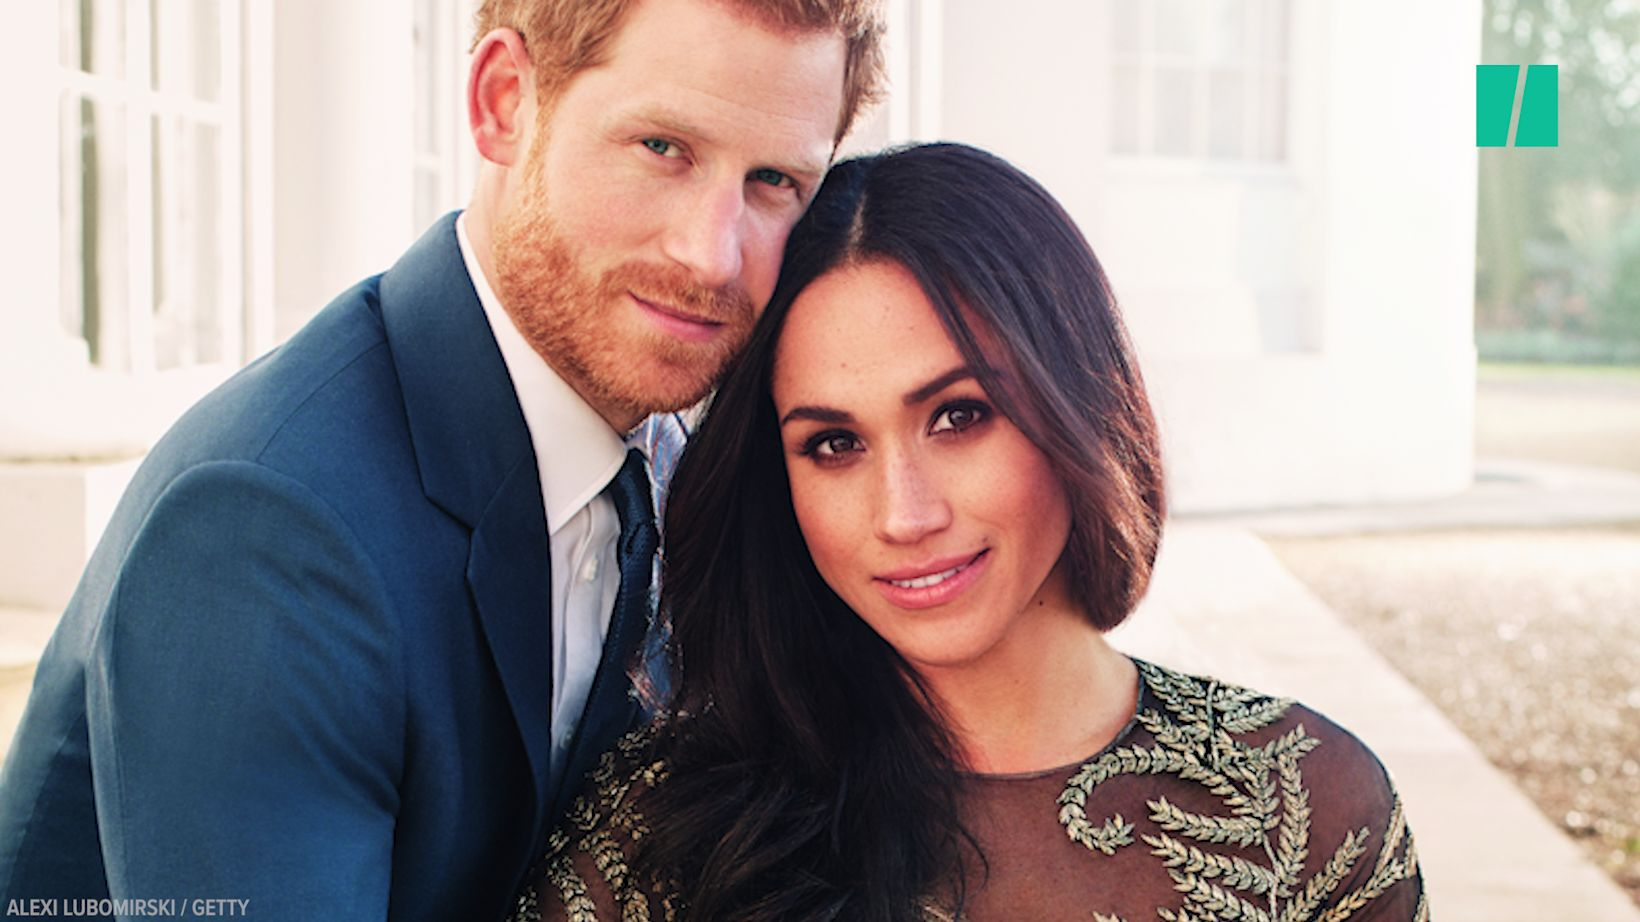 The Trailer For Prince Harry and Meghan Markle's Lifetime Movie Is Something